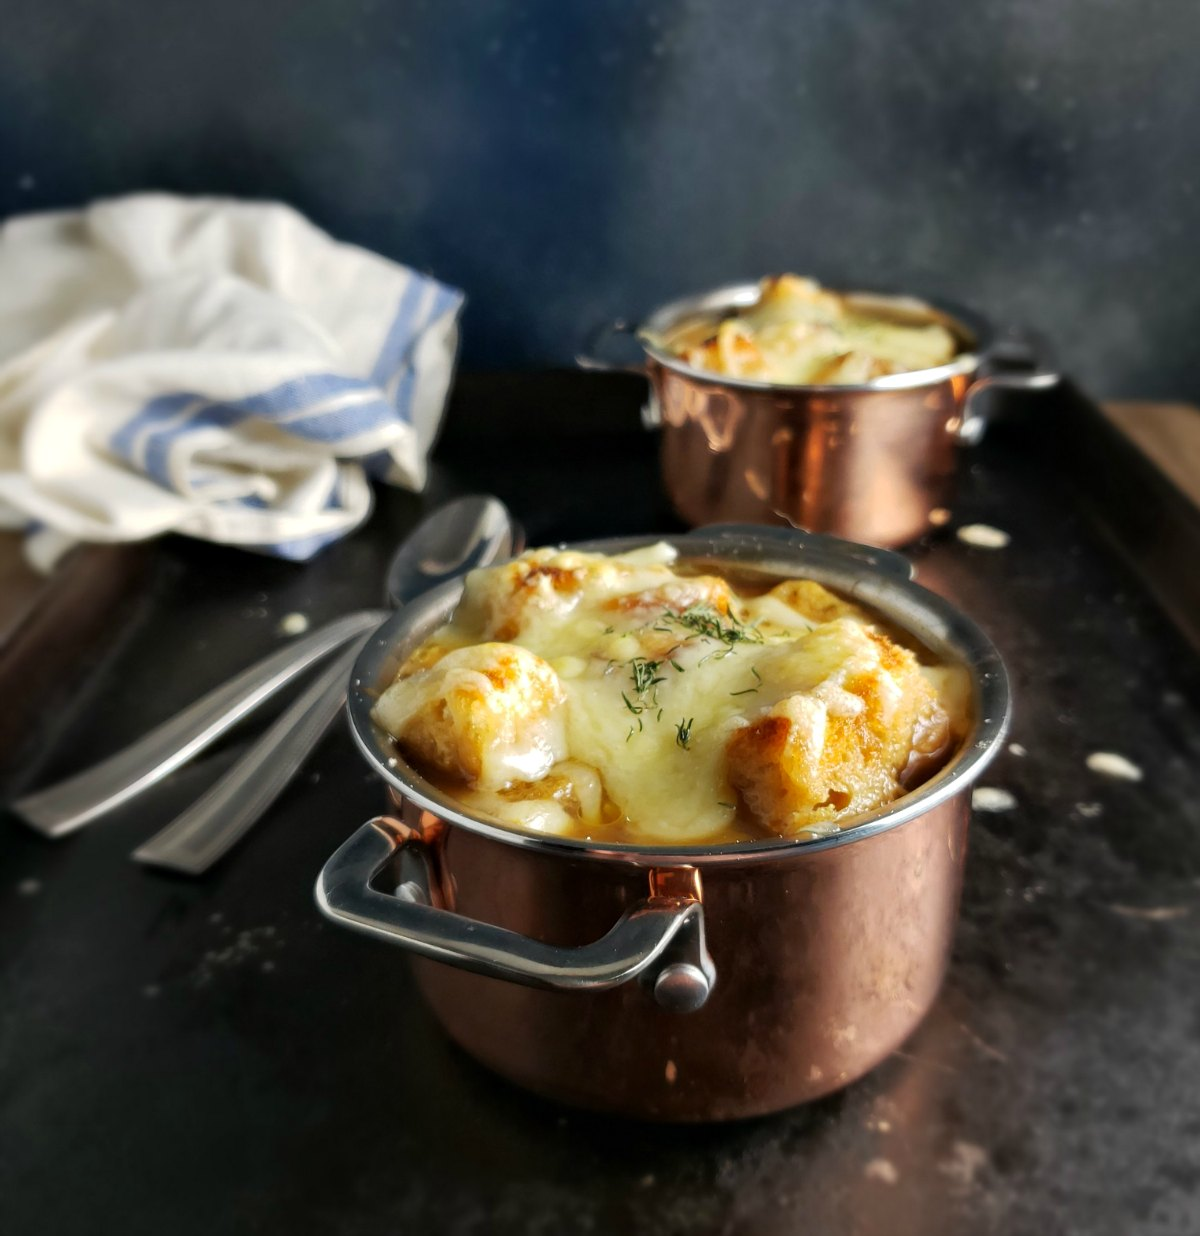 Guinness Onion Soup with White Cheddar Croutons